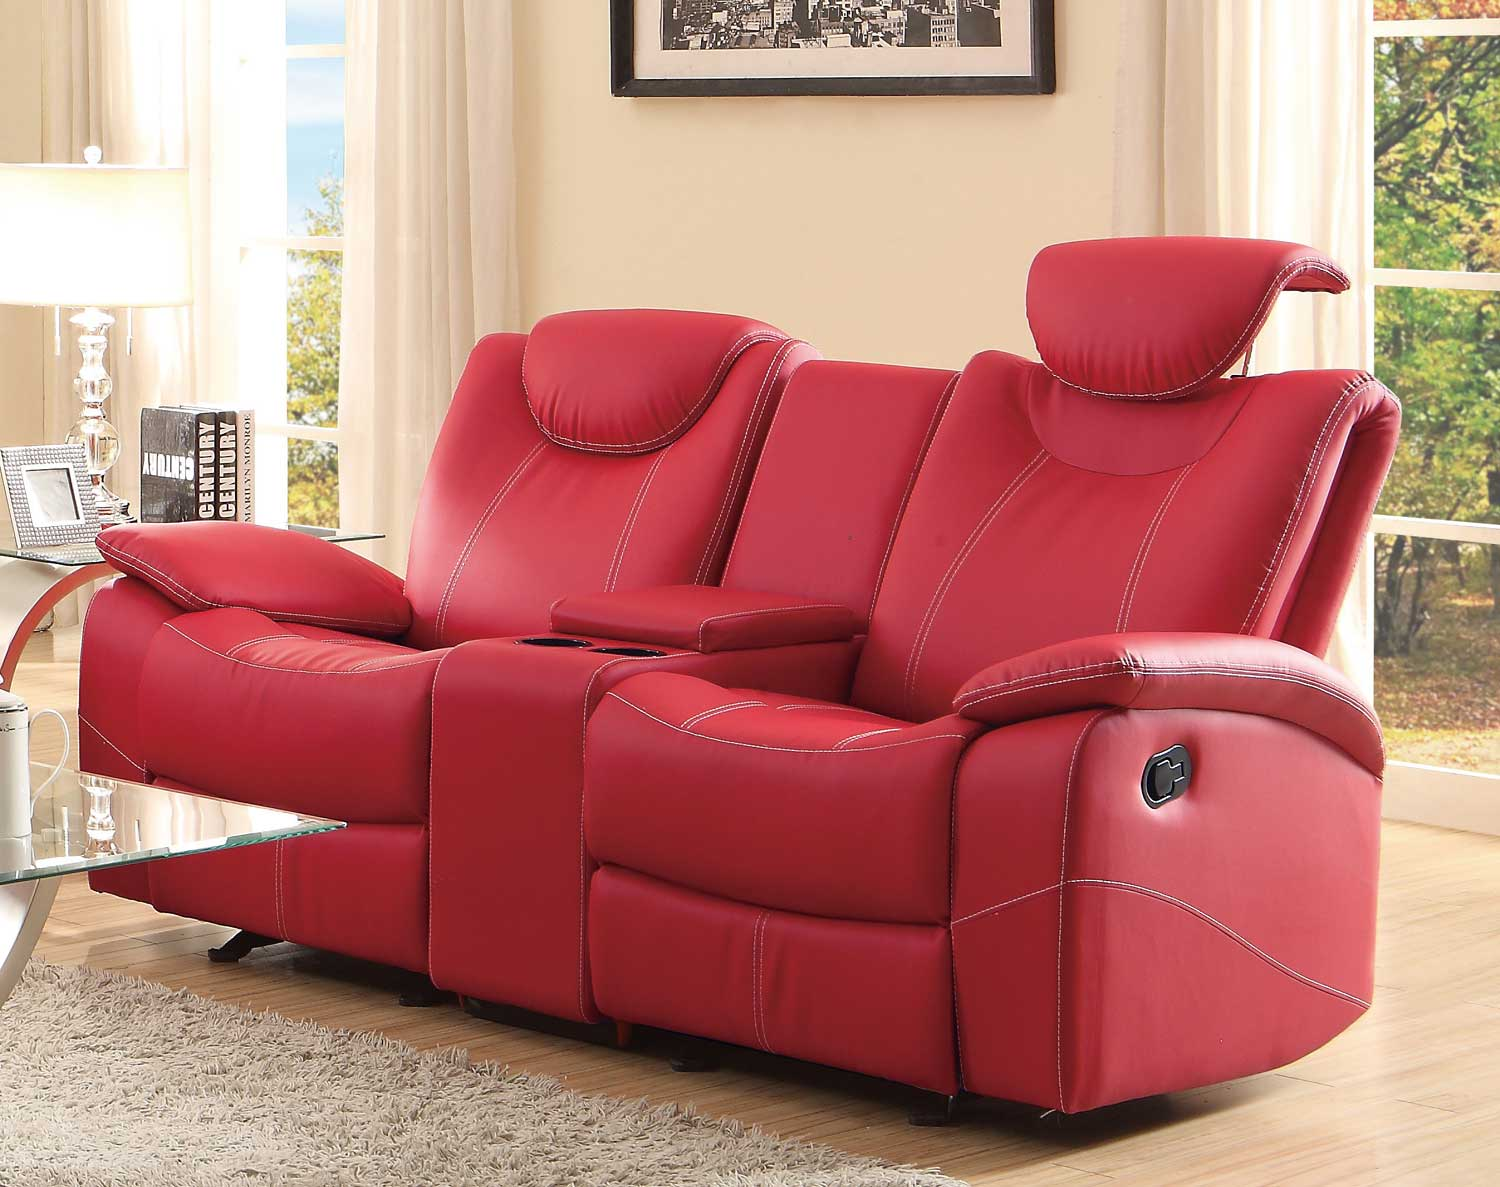 red recliner chairs hair washing chair talbot reclining love seat in shop for affordable home